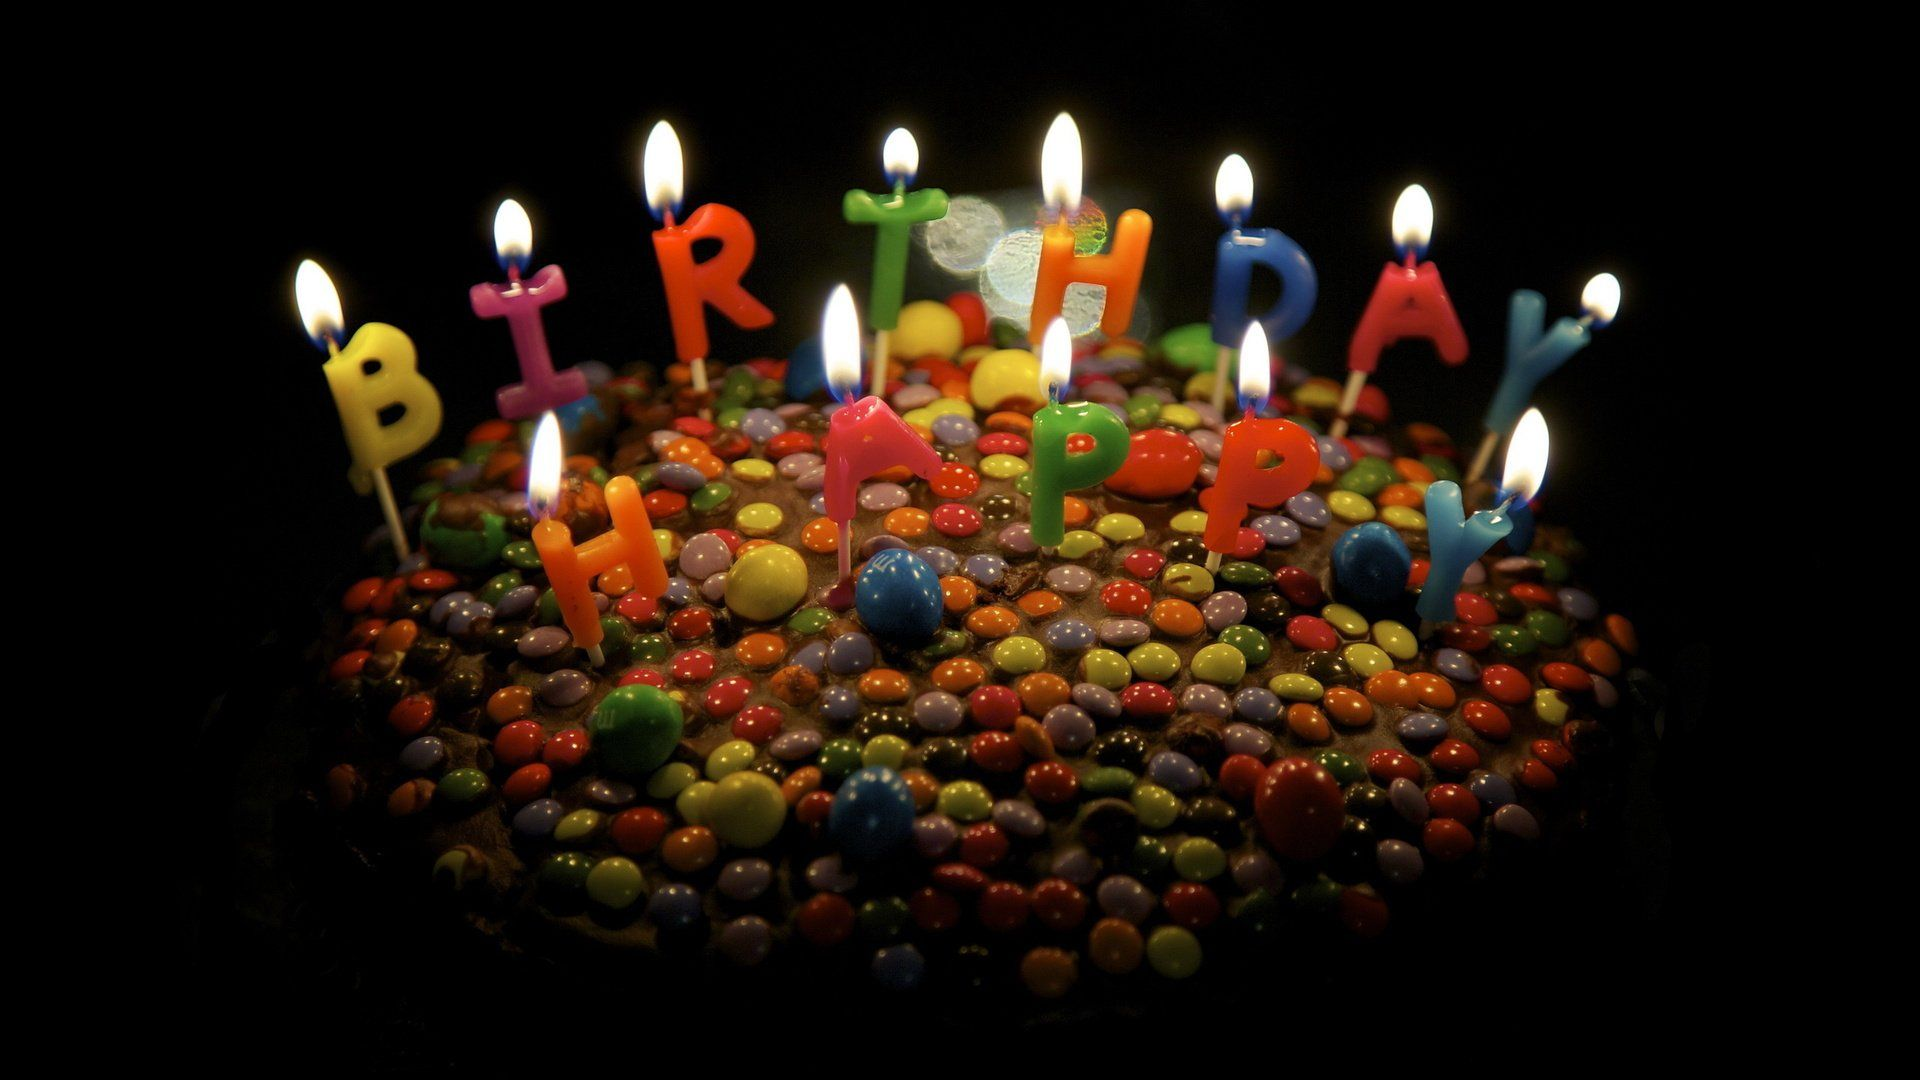 Birthday Cake wallpaper picture hd